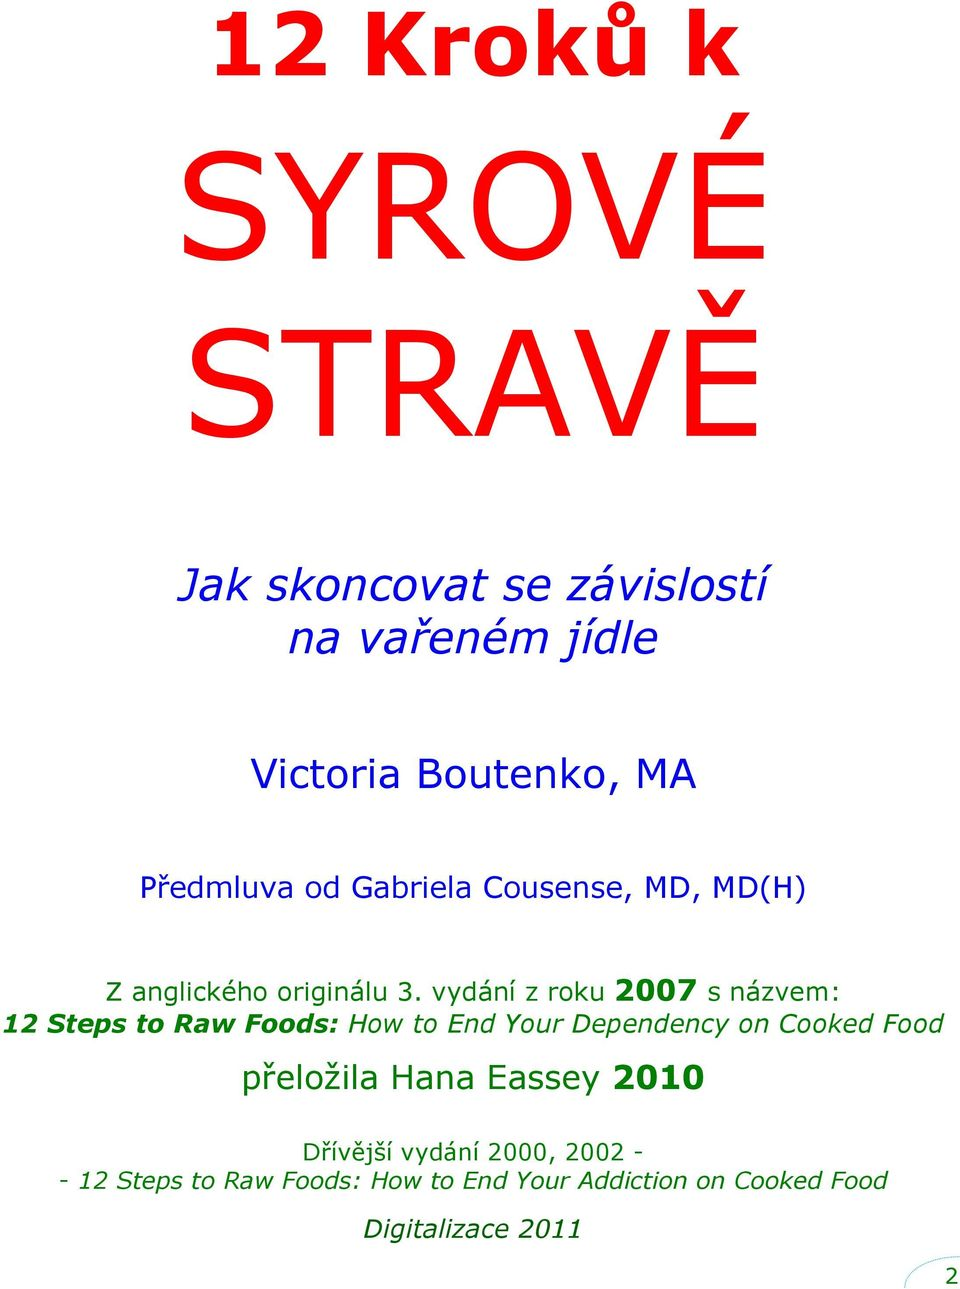 vydání z roku 2007 s názvem: 12 Steps to Raw Foods: How to End Your Dependency on Cooked Food